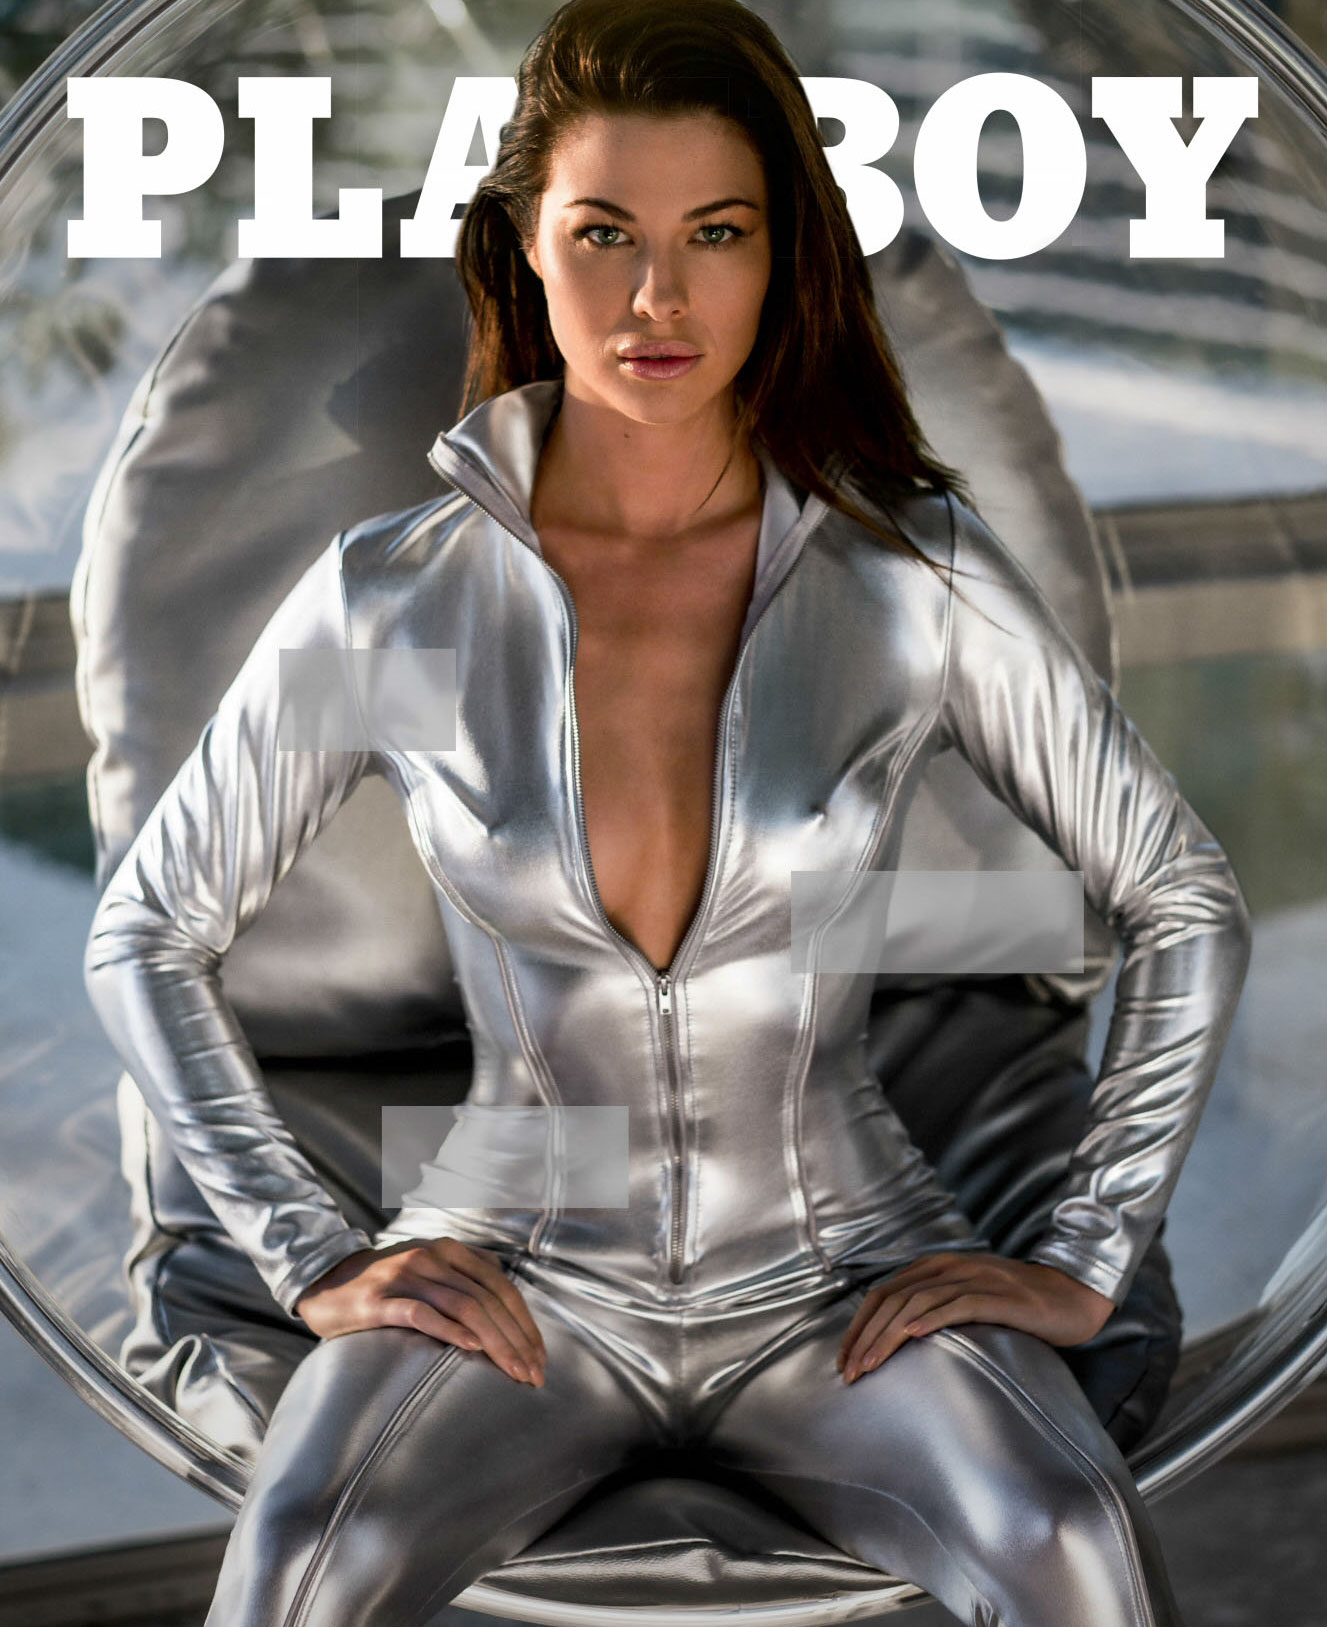 March 2018 Playmate / Jenny Watwood by Derek Kettela - Playboy march/april 2018